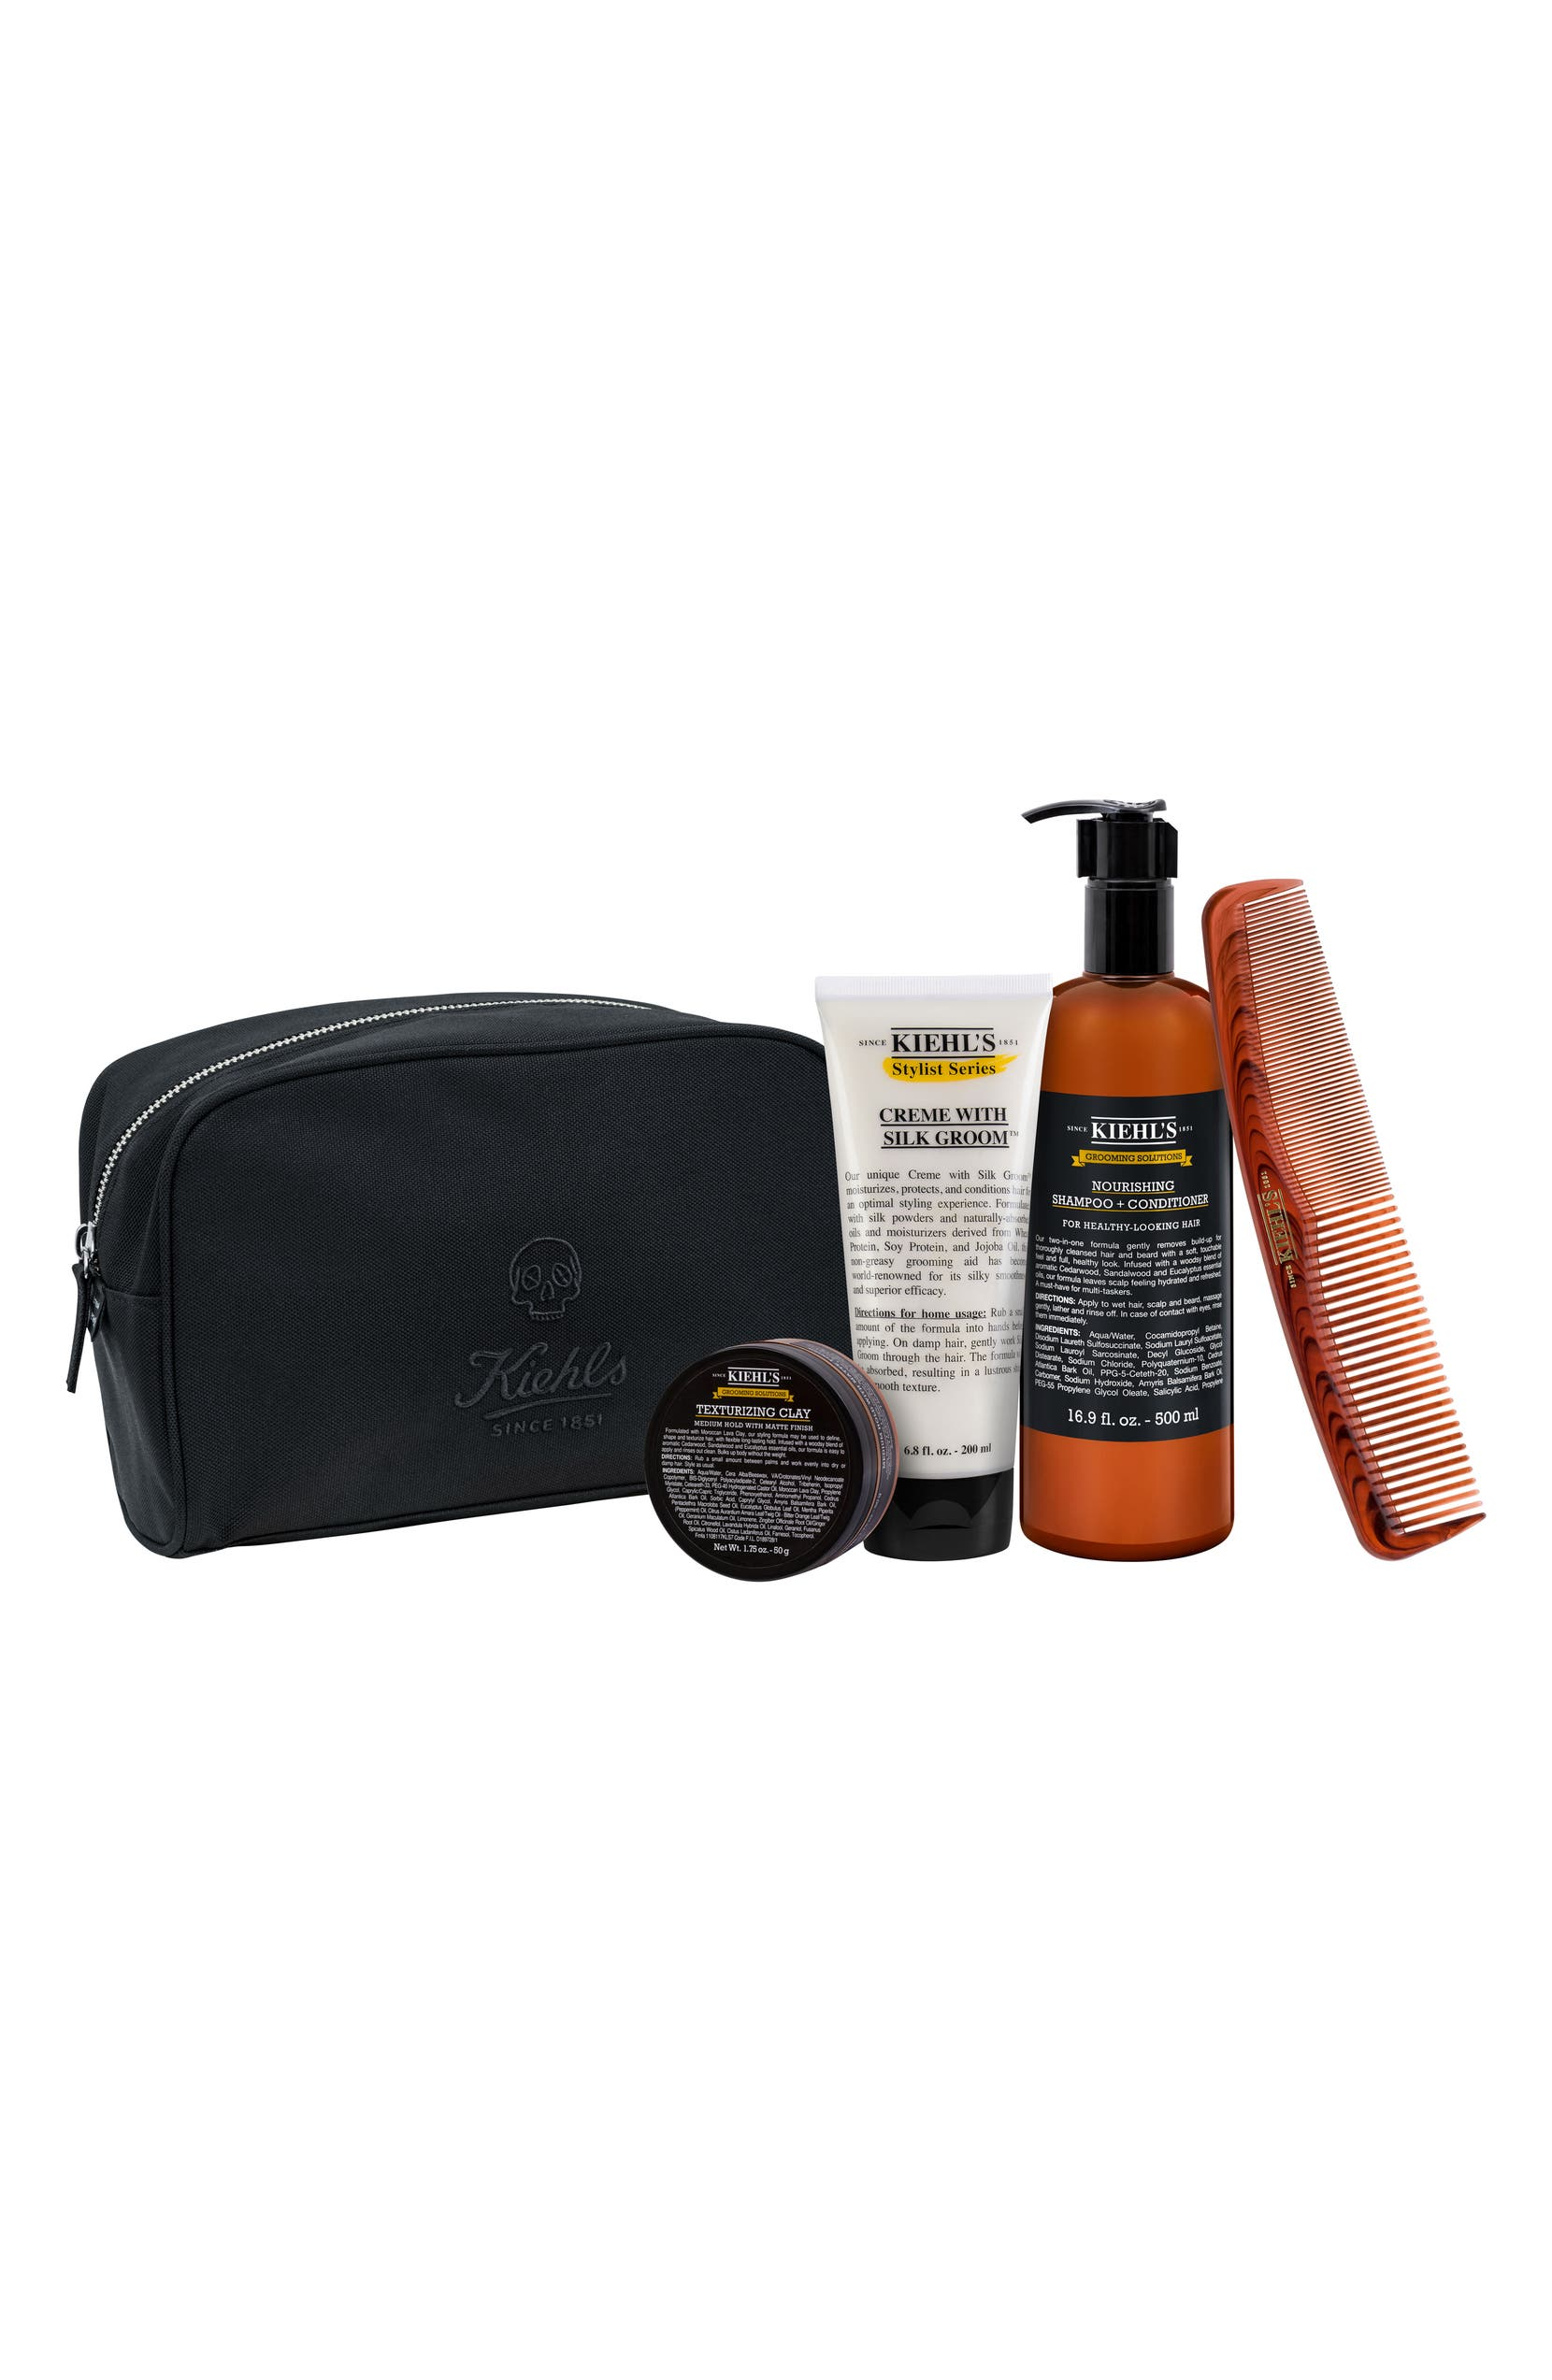 Kiehl\'s Since 1851 Groom with Greatness Collection ($80 Value ...